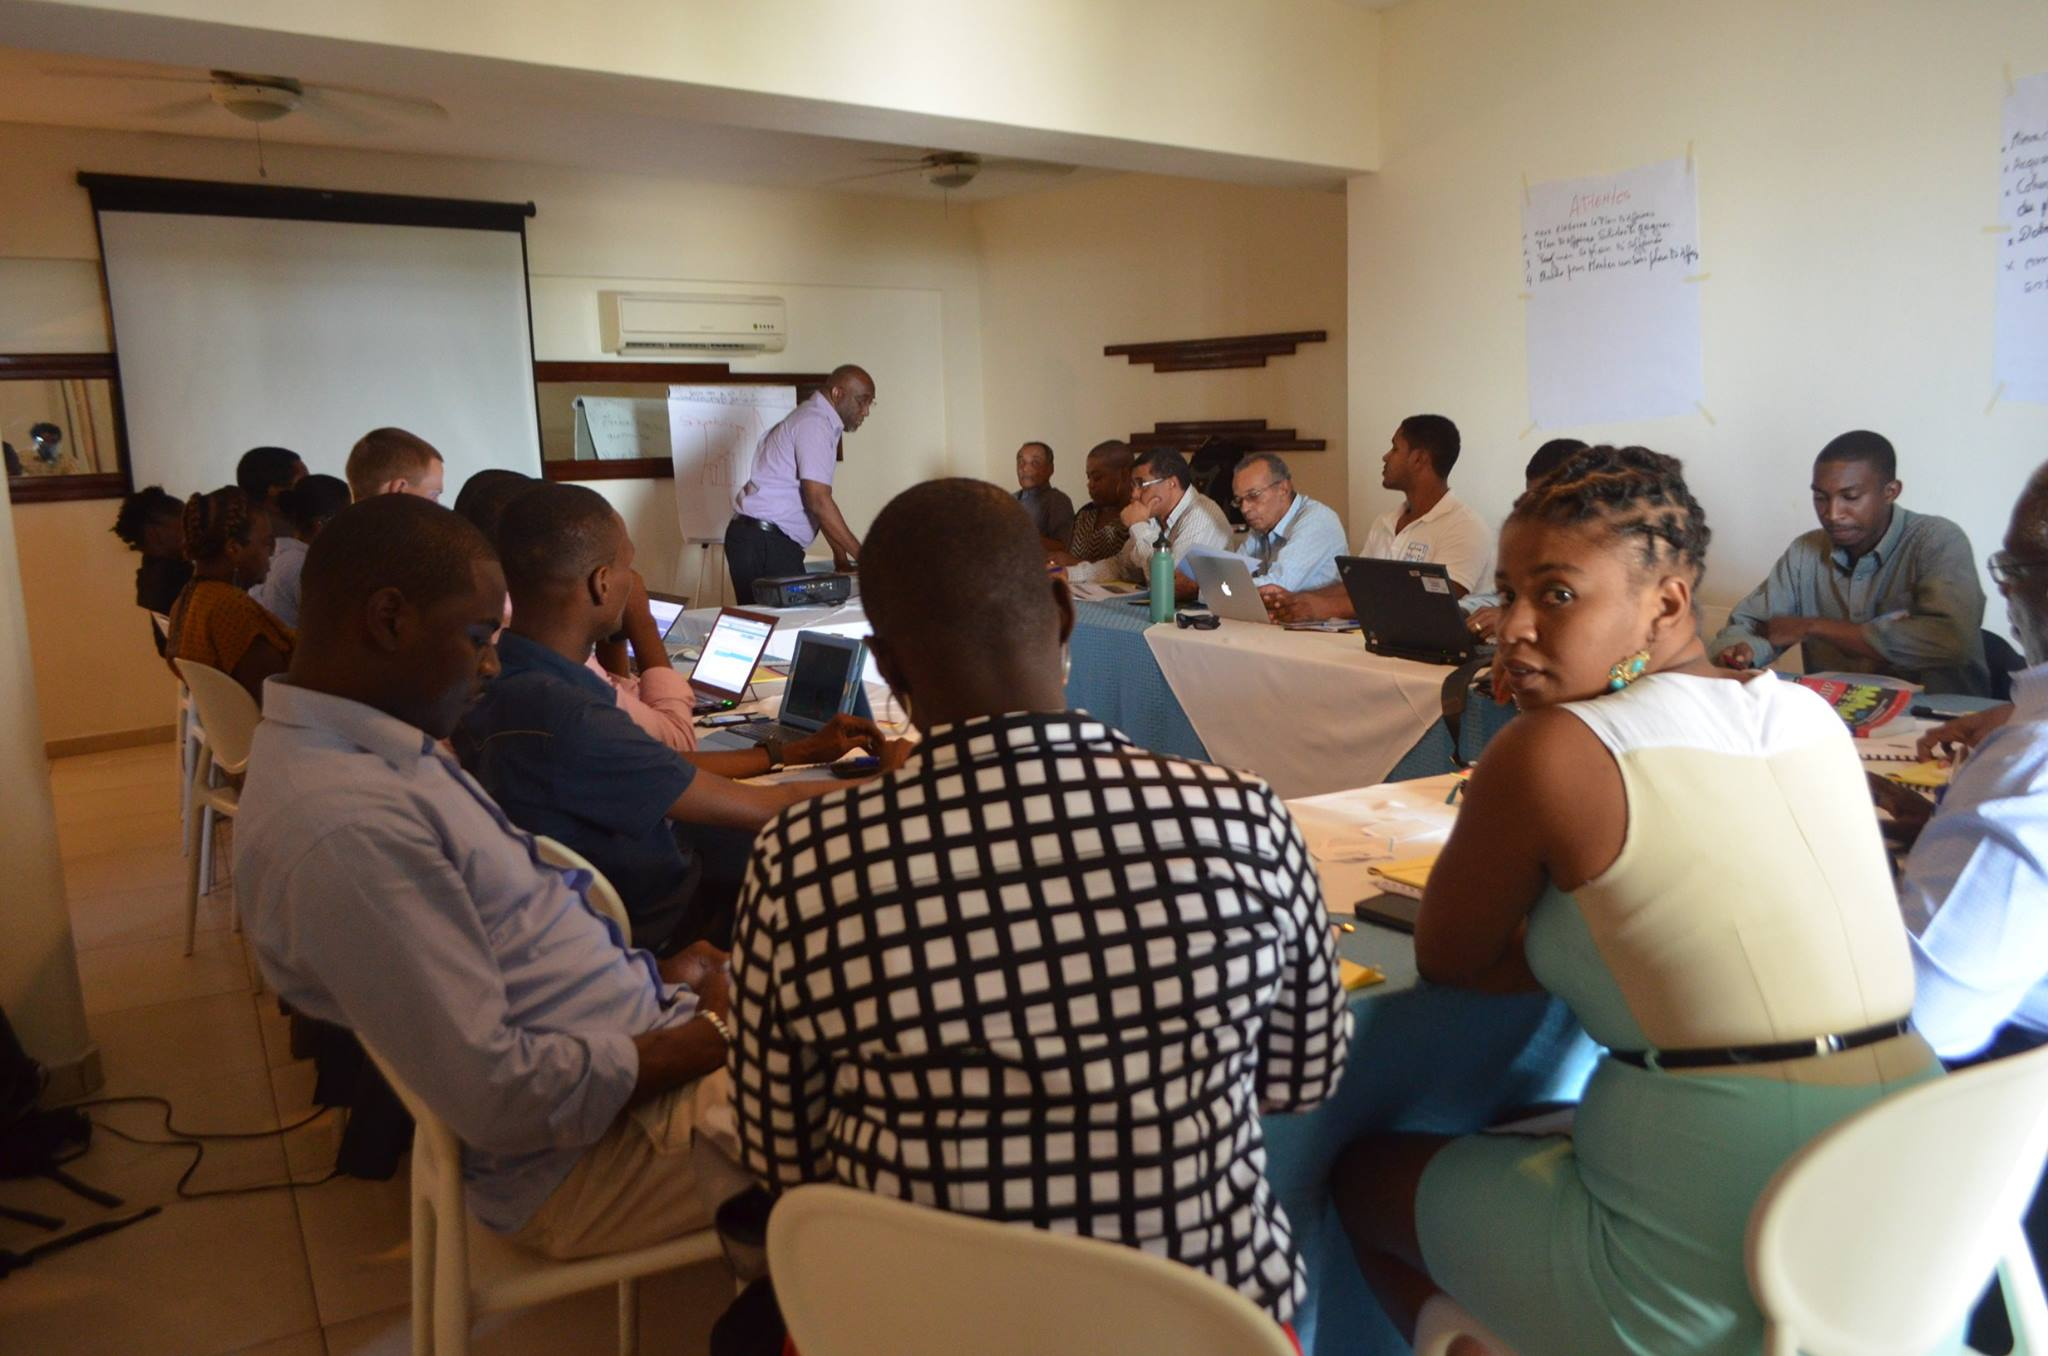 The training took place at the Hotel Montana in Port-au-Prince.